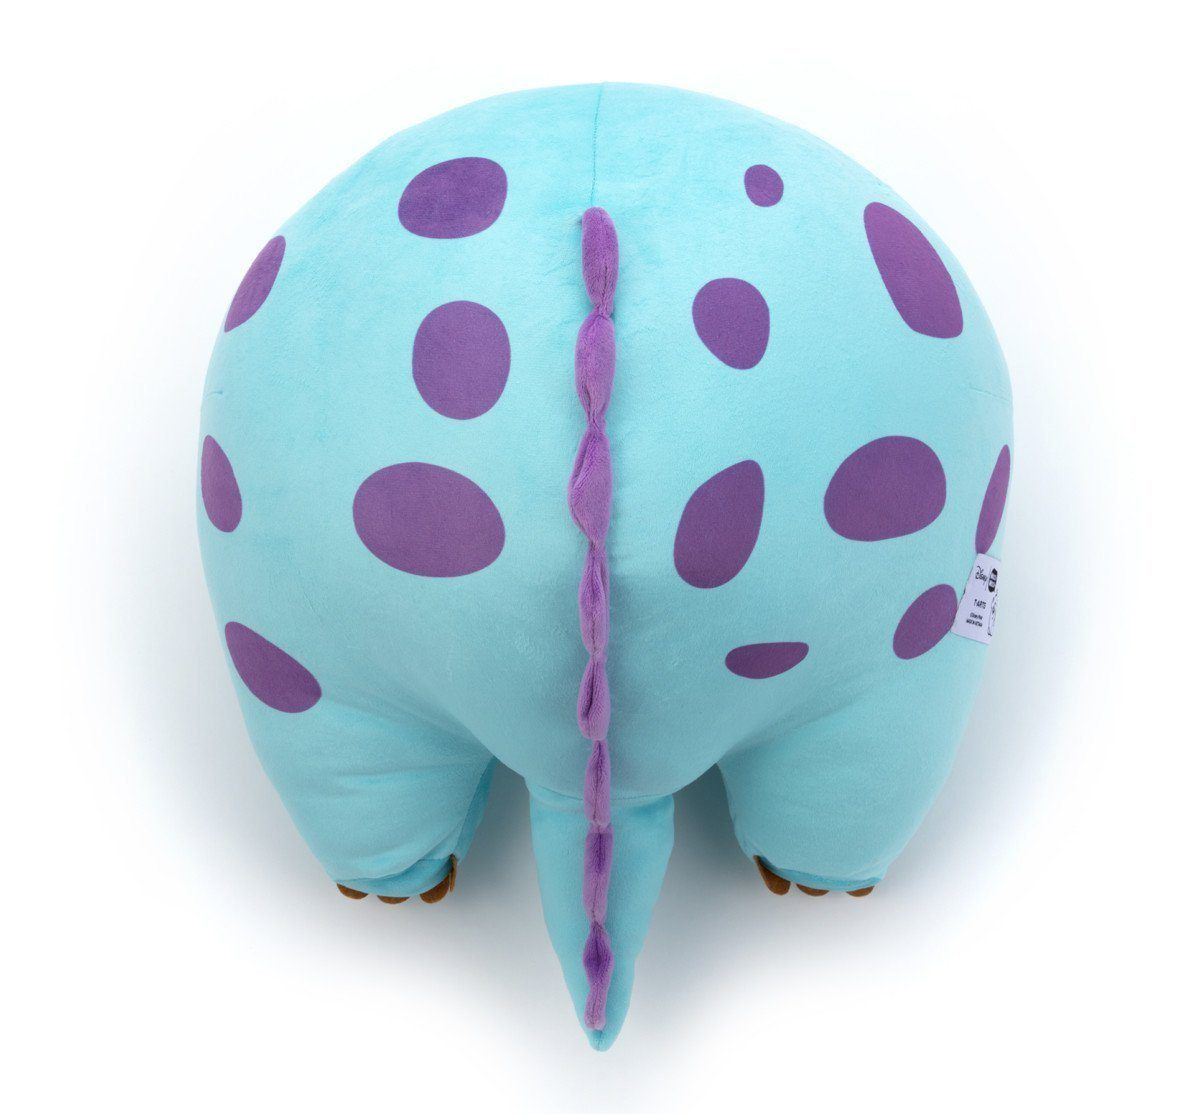 Japan Disney/Pixar Mocchi Mocchi - Relax Cushion Plush - Sulley (Butt)